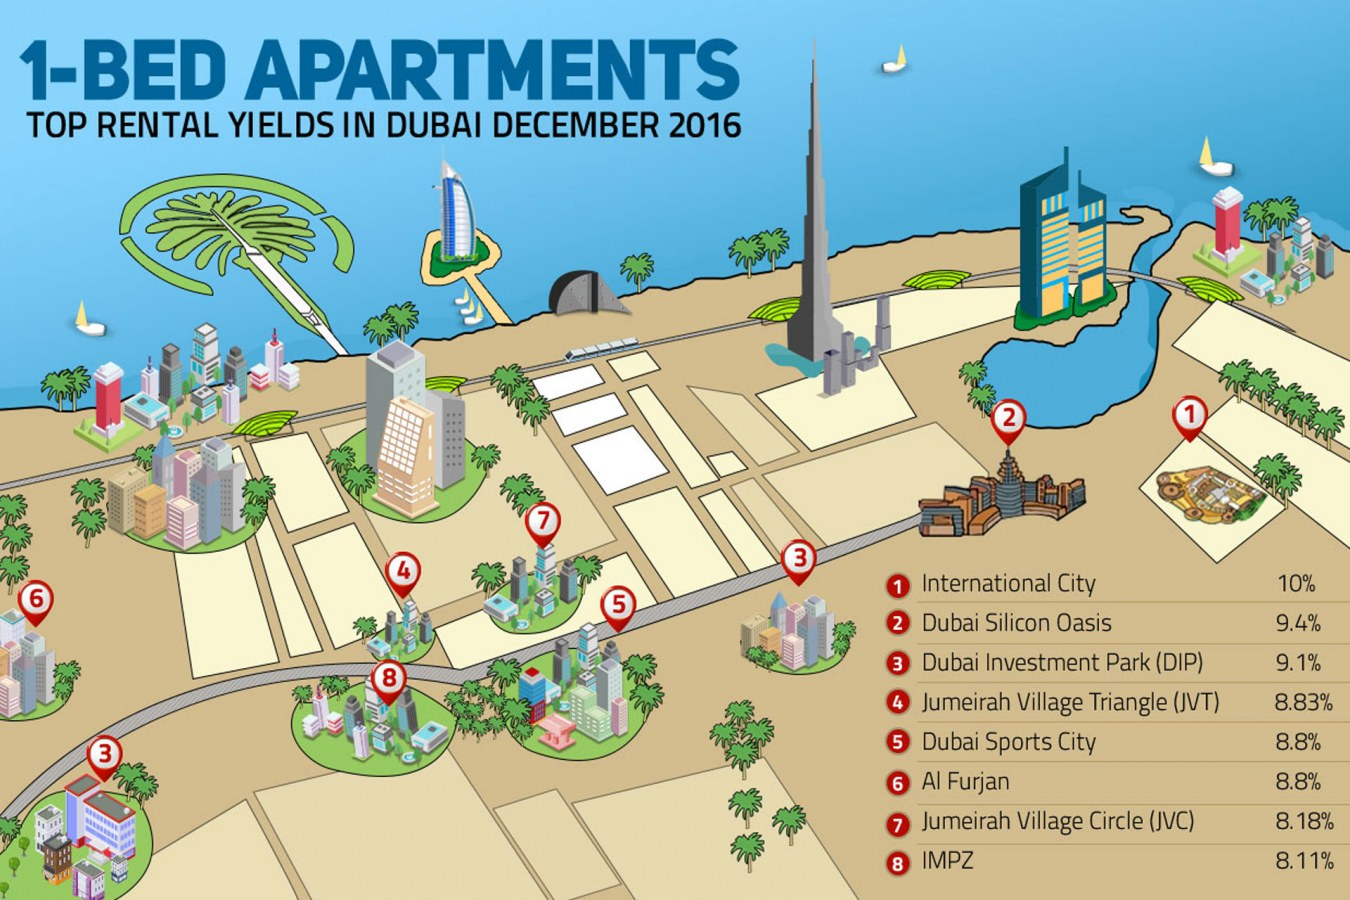 Infographic about areas with top rental yields in Dubai in December 2016